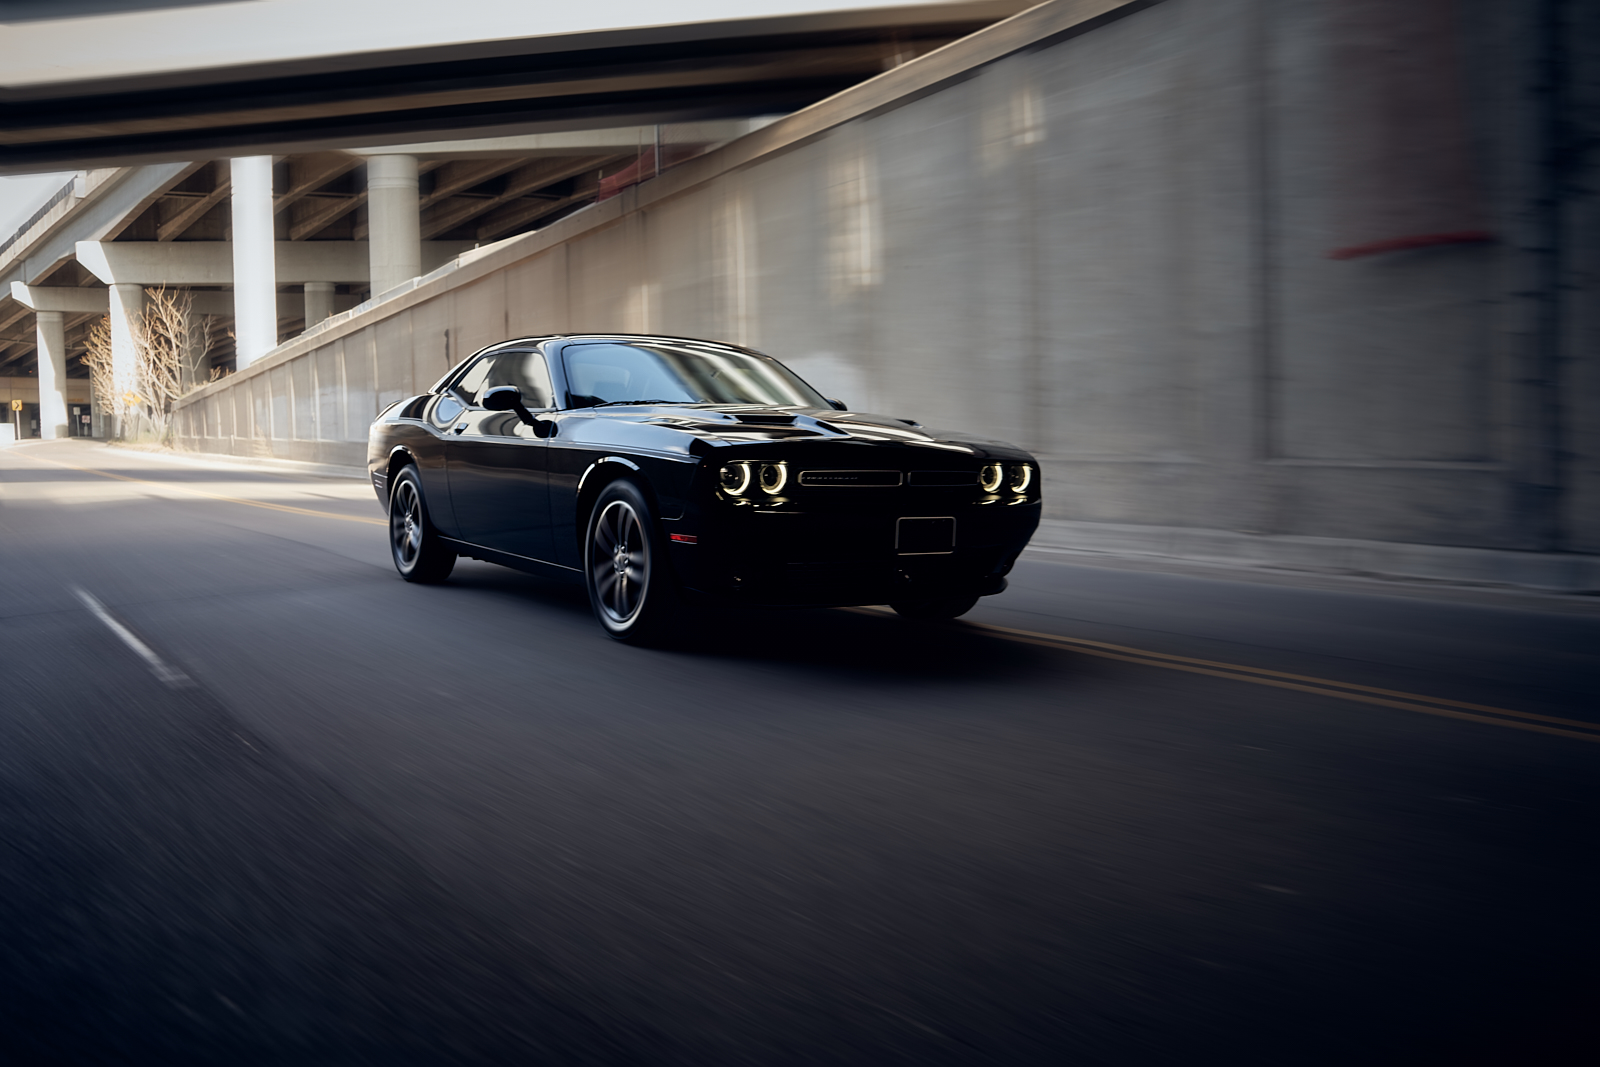 Dodge Challenger Apr 27 2019 4.jpg